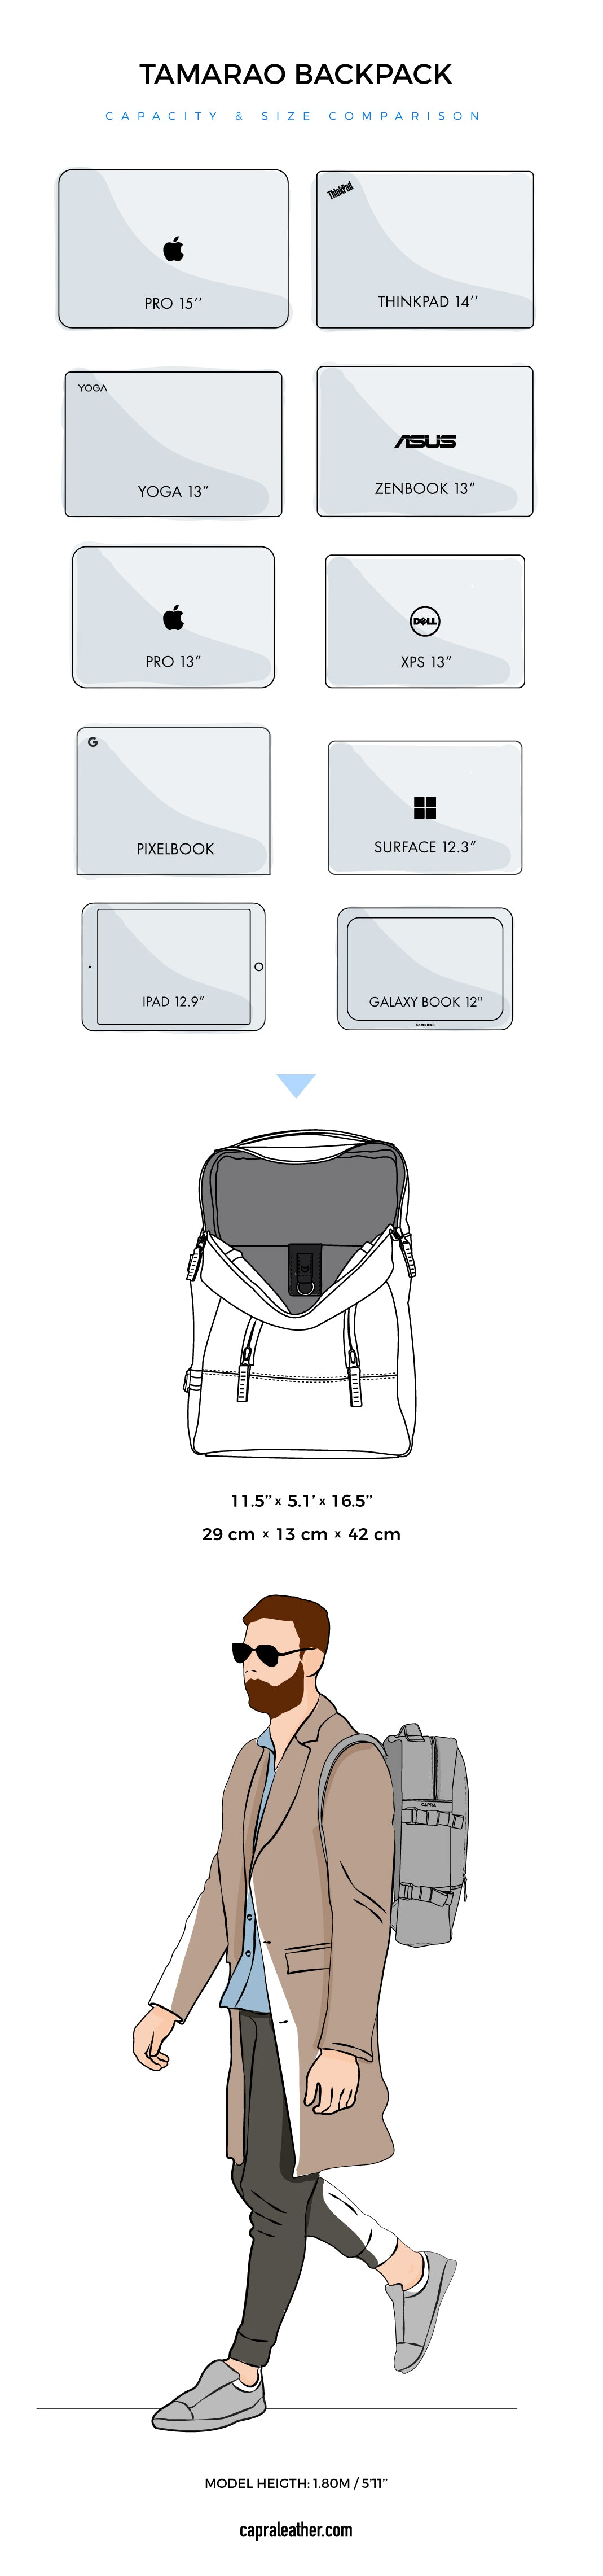 Tamarao Leather Backpack Size Chart